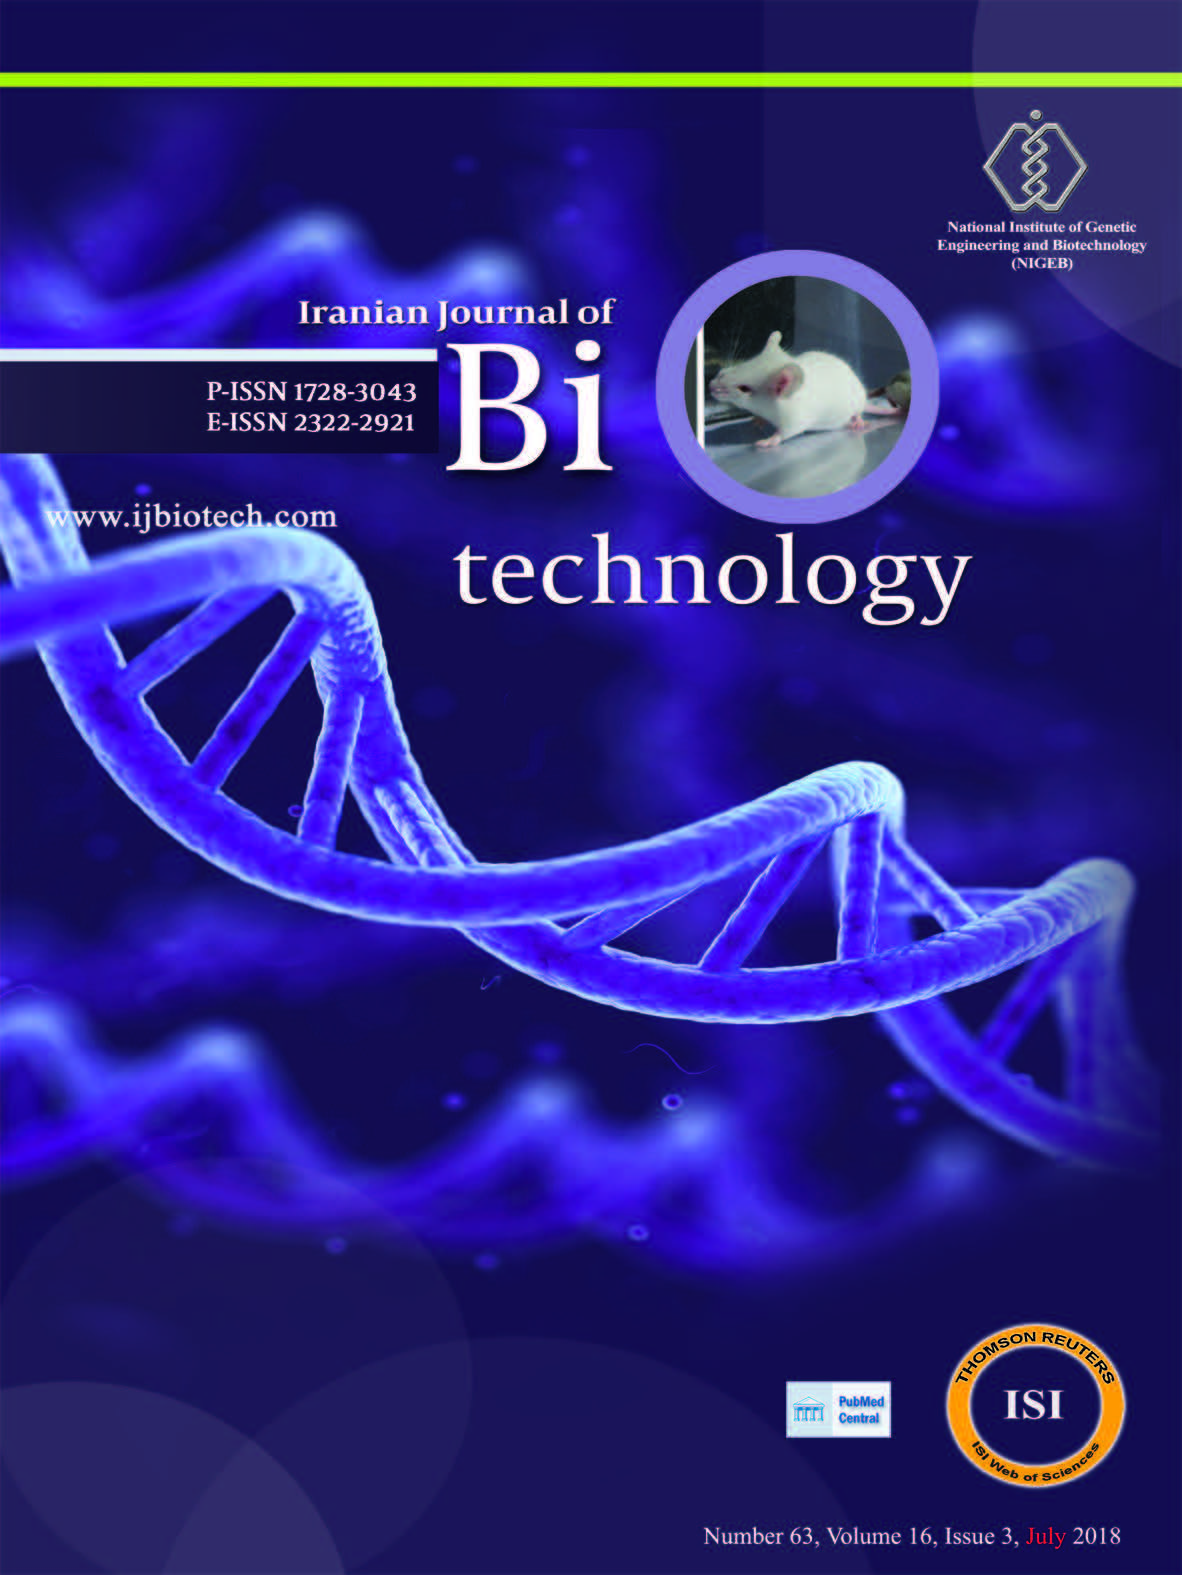 020 Biotechnology Researchs Pdf Free Download Cover En Impressive Research Papers Full